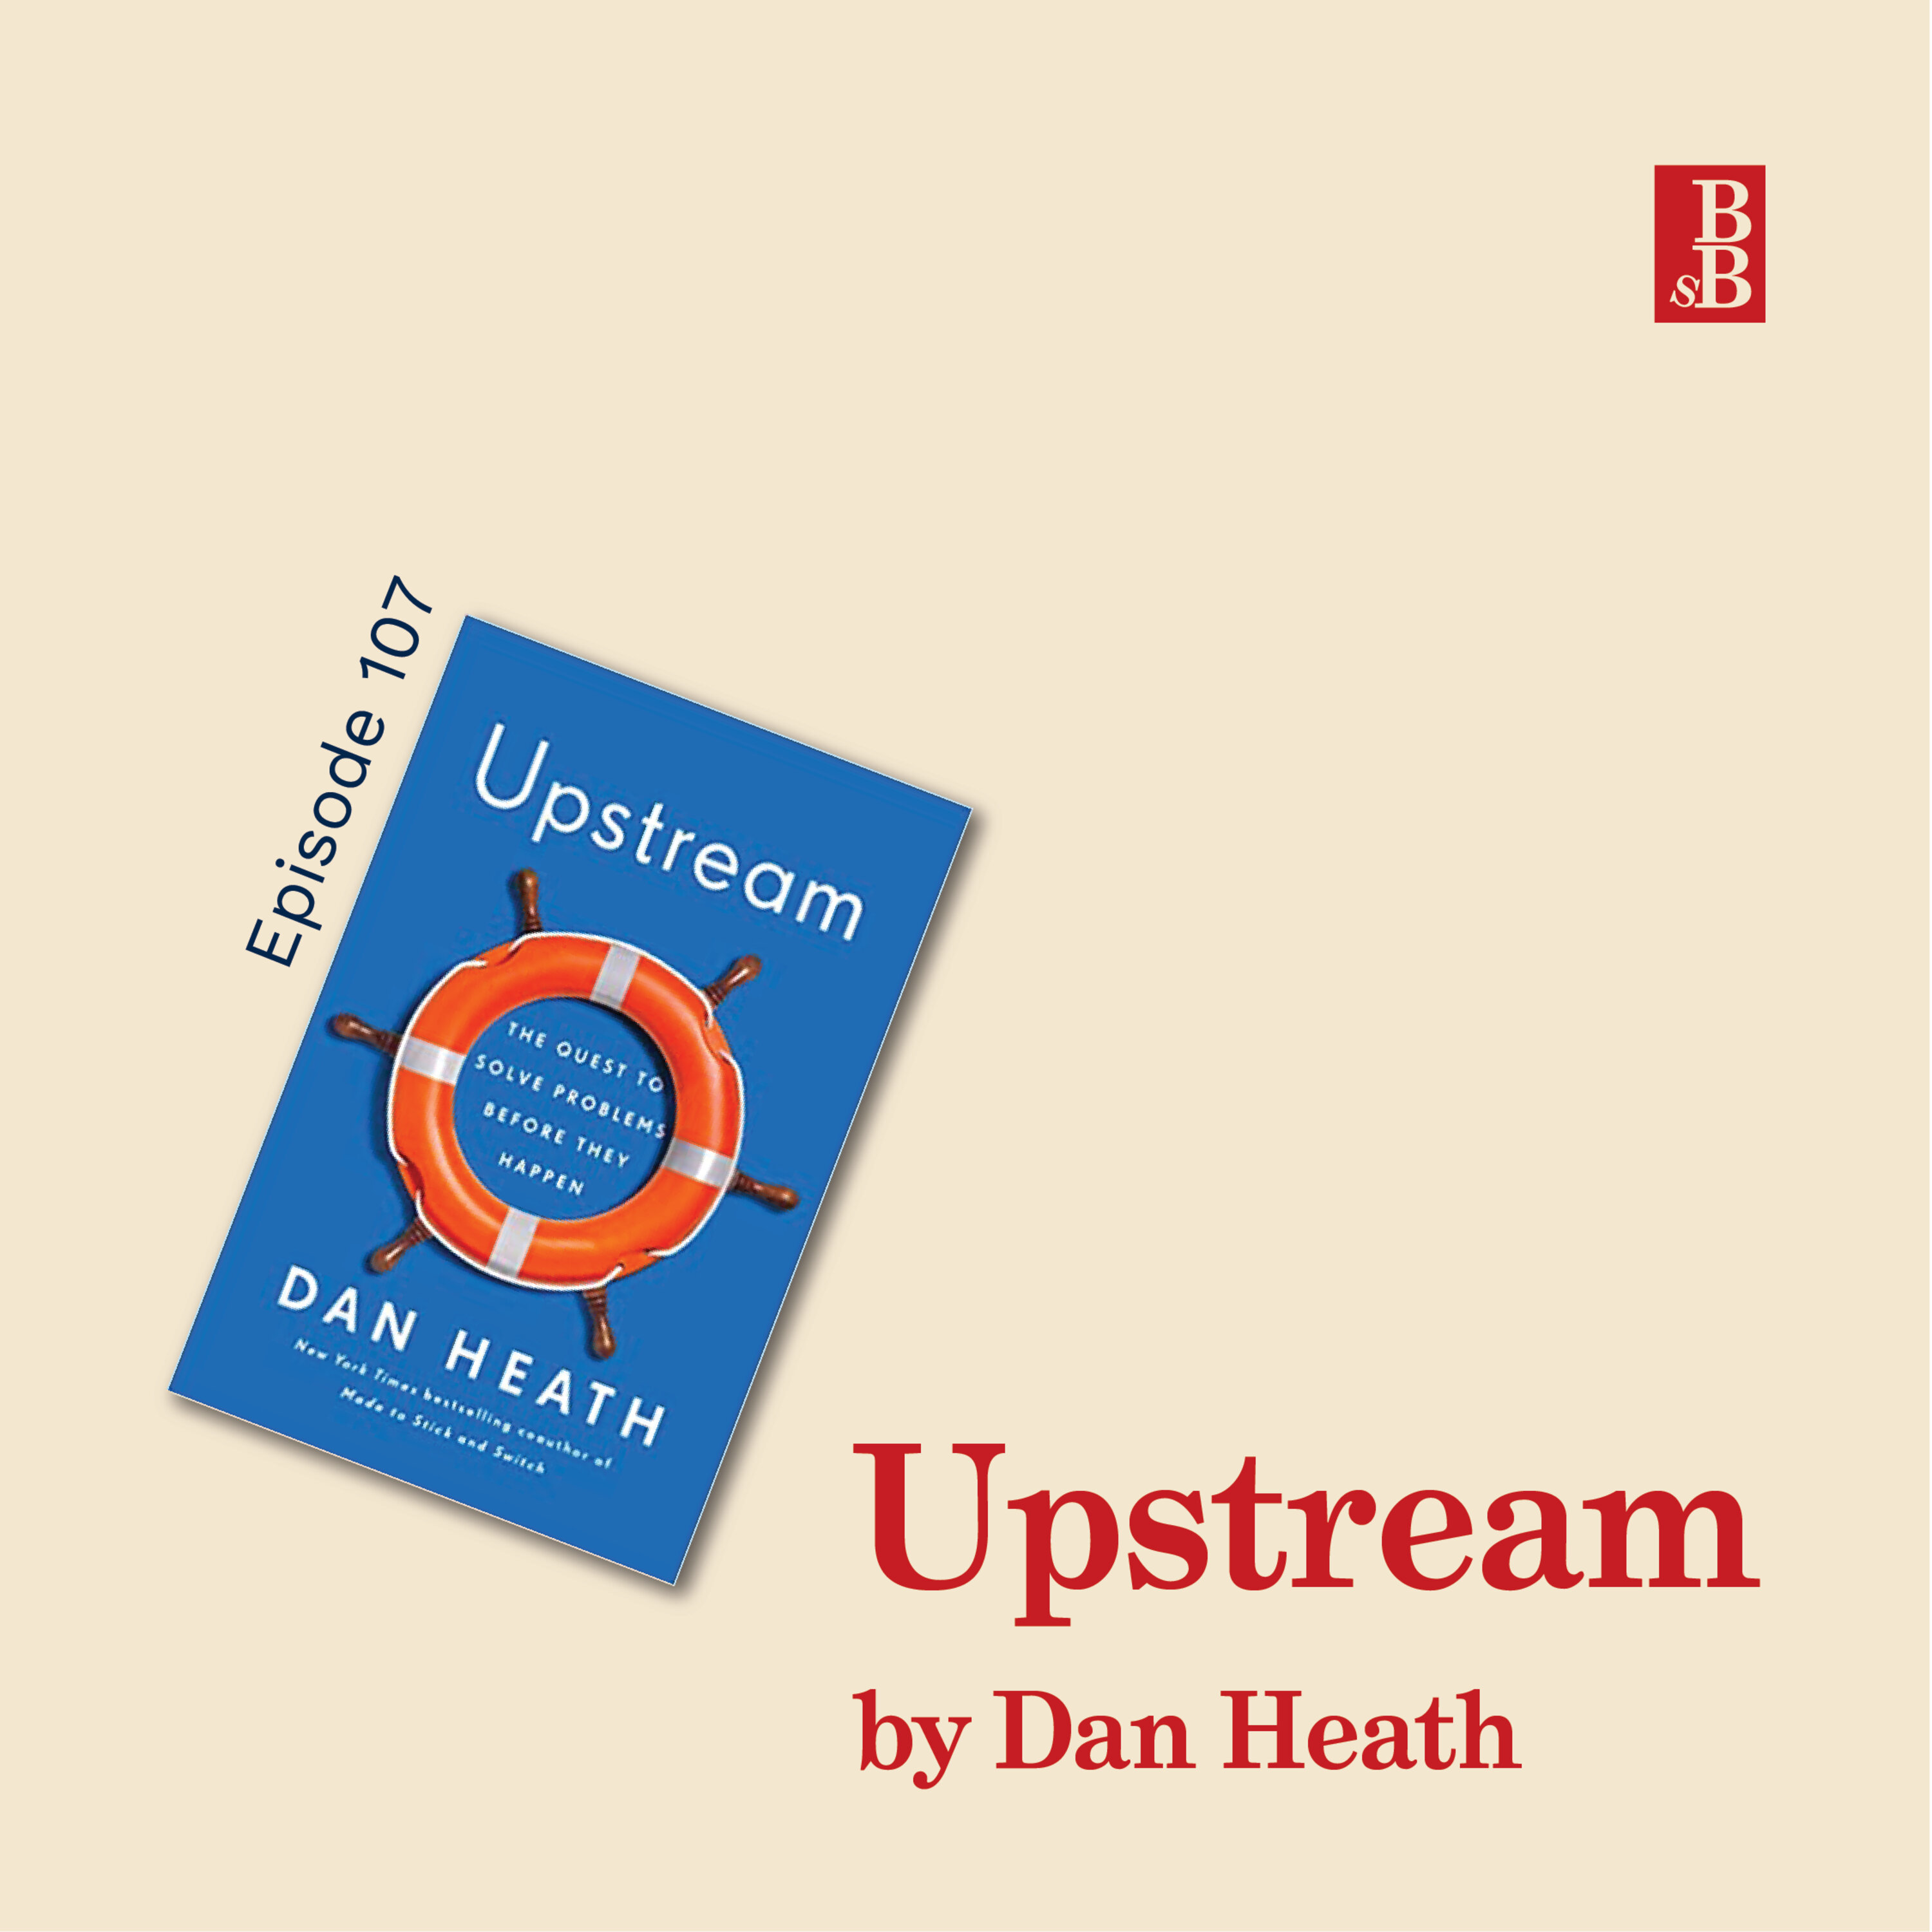 Upstream by Dan Heath: why we keep throwing kids in the river (and how to stop)